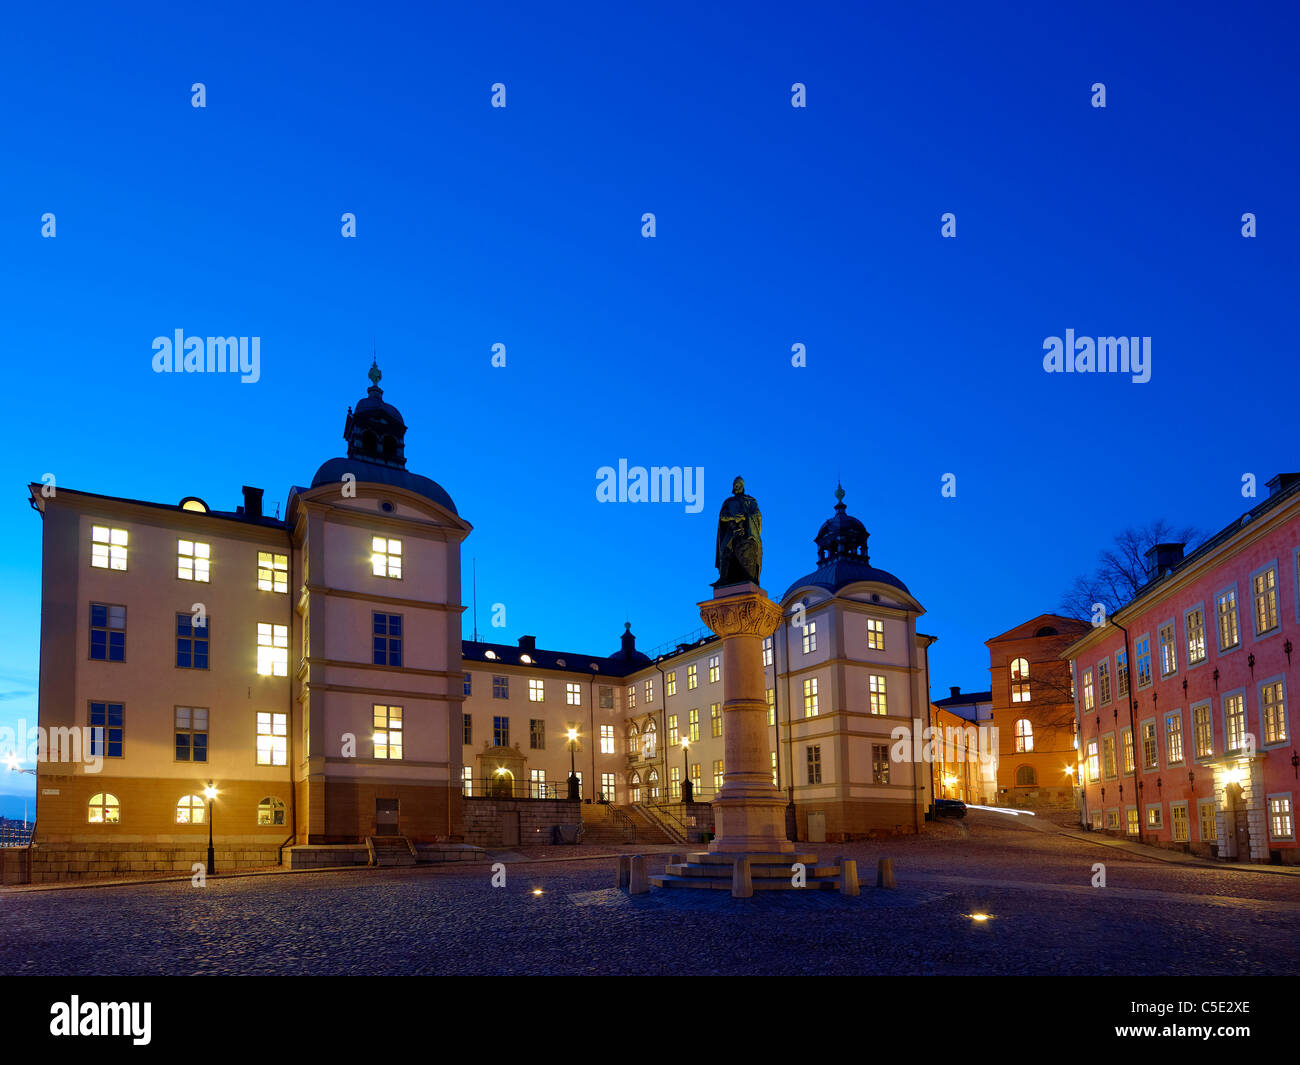 Svea Court of Appeal against clear blue sky at night in Stockholm, Sweden - Stock Image